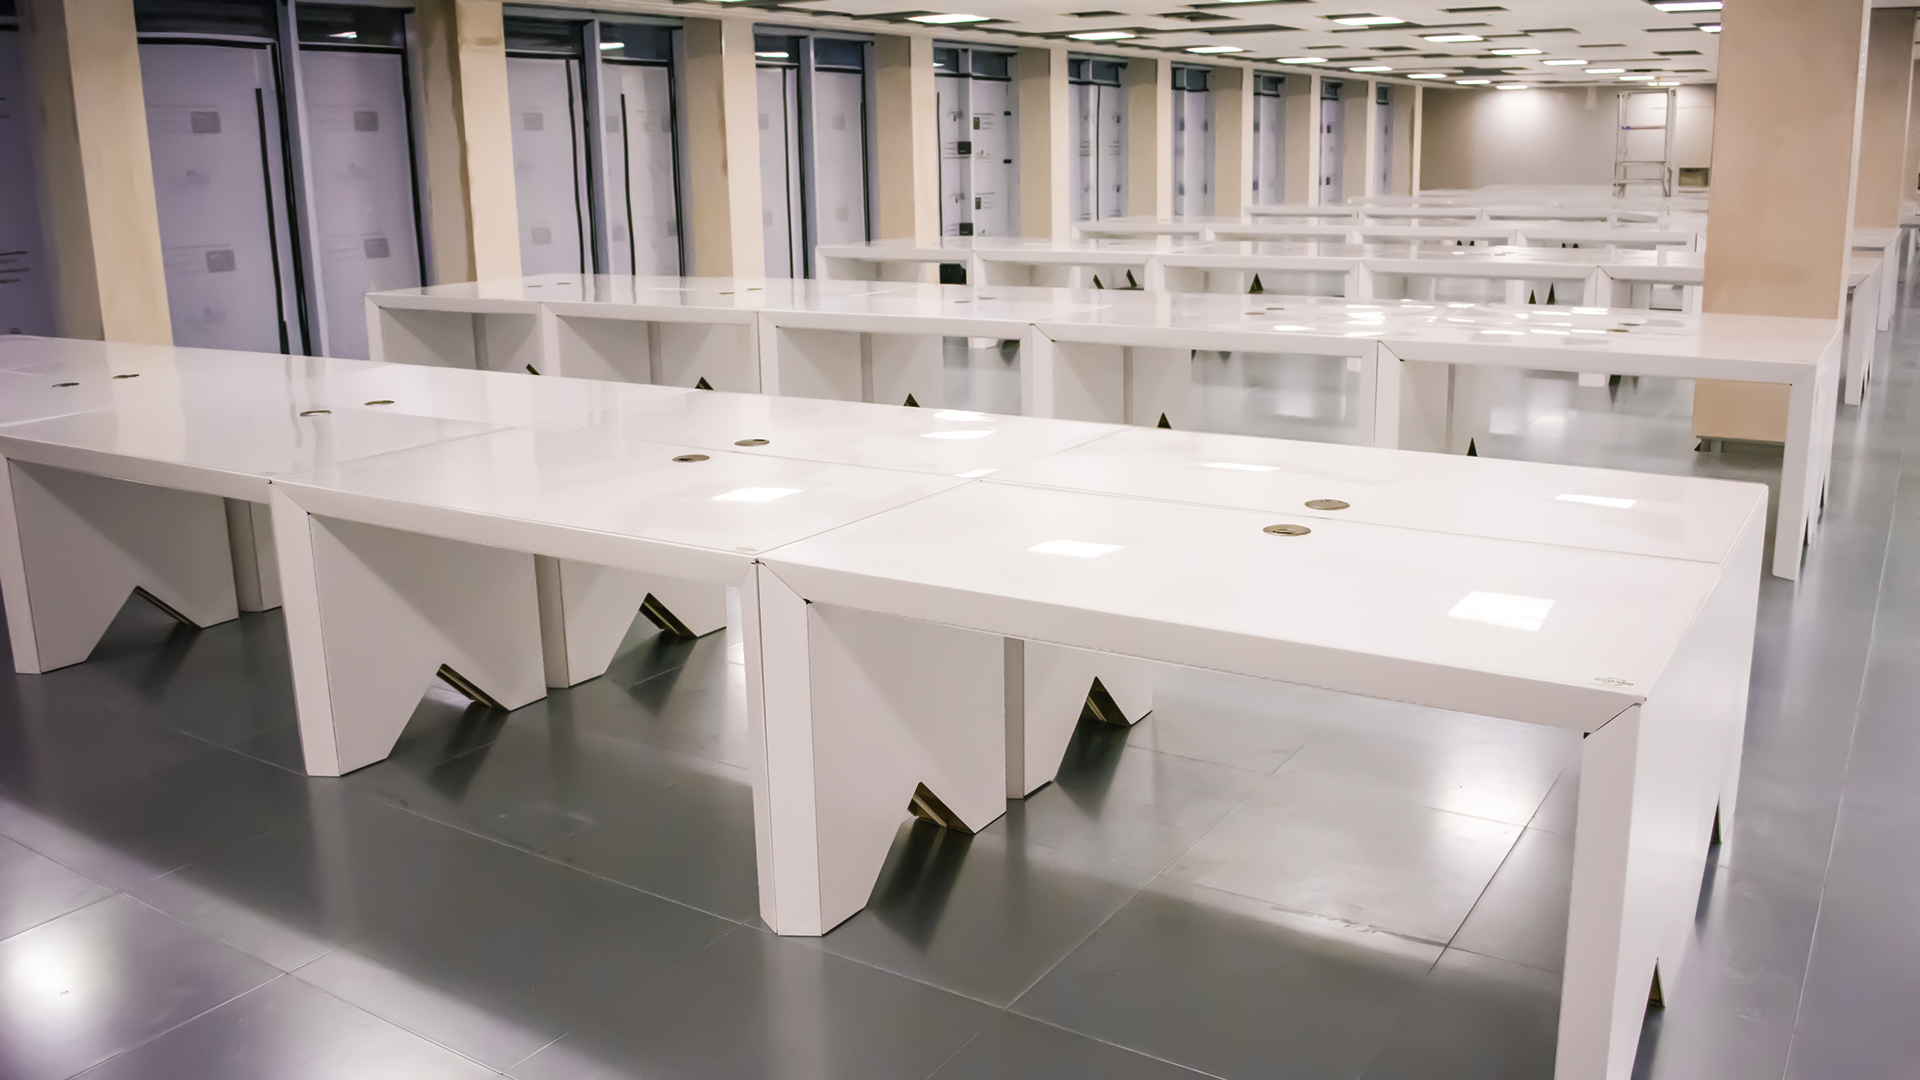 Multiplex embraces sustainability by using recycled ECO360 cardboard desks at 100 Bishopsgate